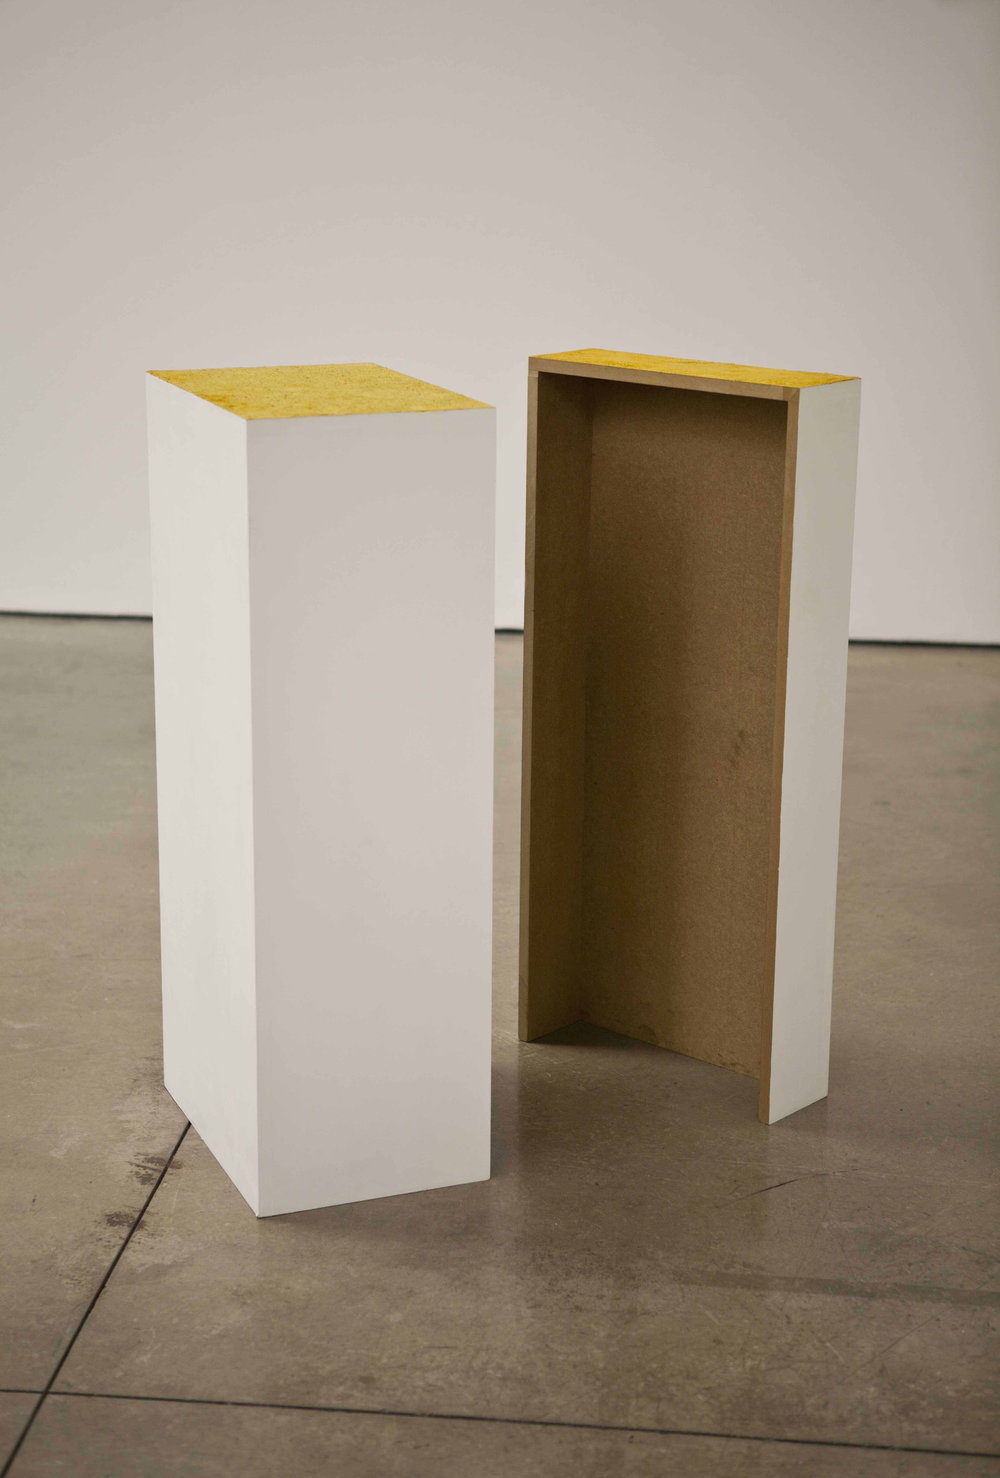 Bee Pollen (2/3 Plinth) Pigment (1/3 Plinth), Mixed media (mdf, bee pollen, pigment) 100 x 45 x 31 cm and 100 x 45 x 14 cm, 2013